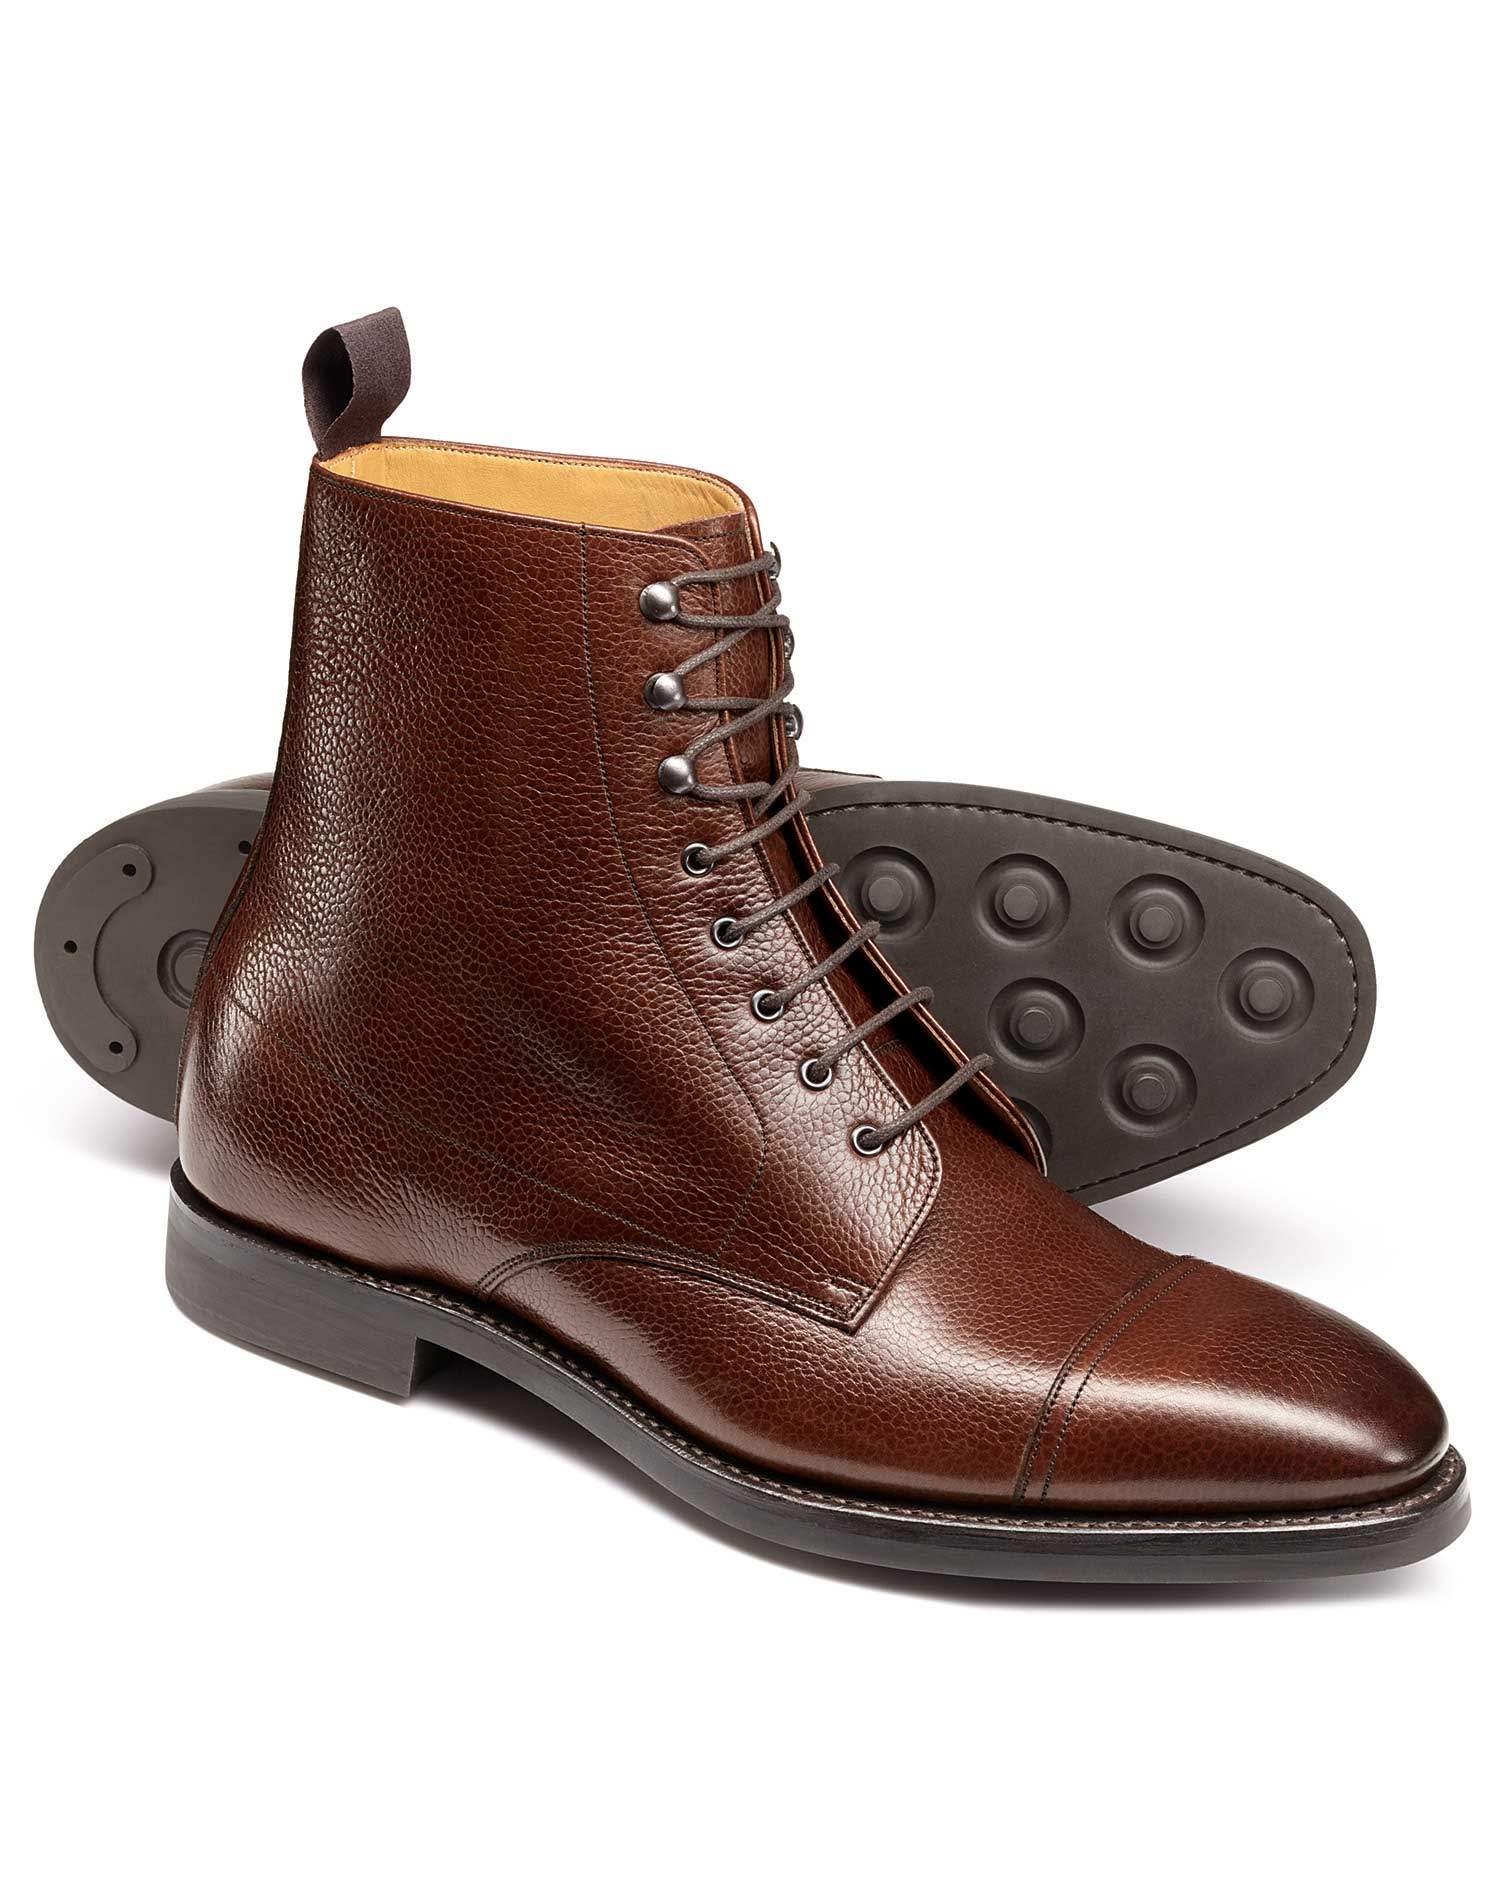 Brown Goodyear Welted Toe Cap Boots Size 10 R by Charles Tyrwhitt